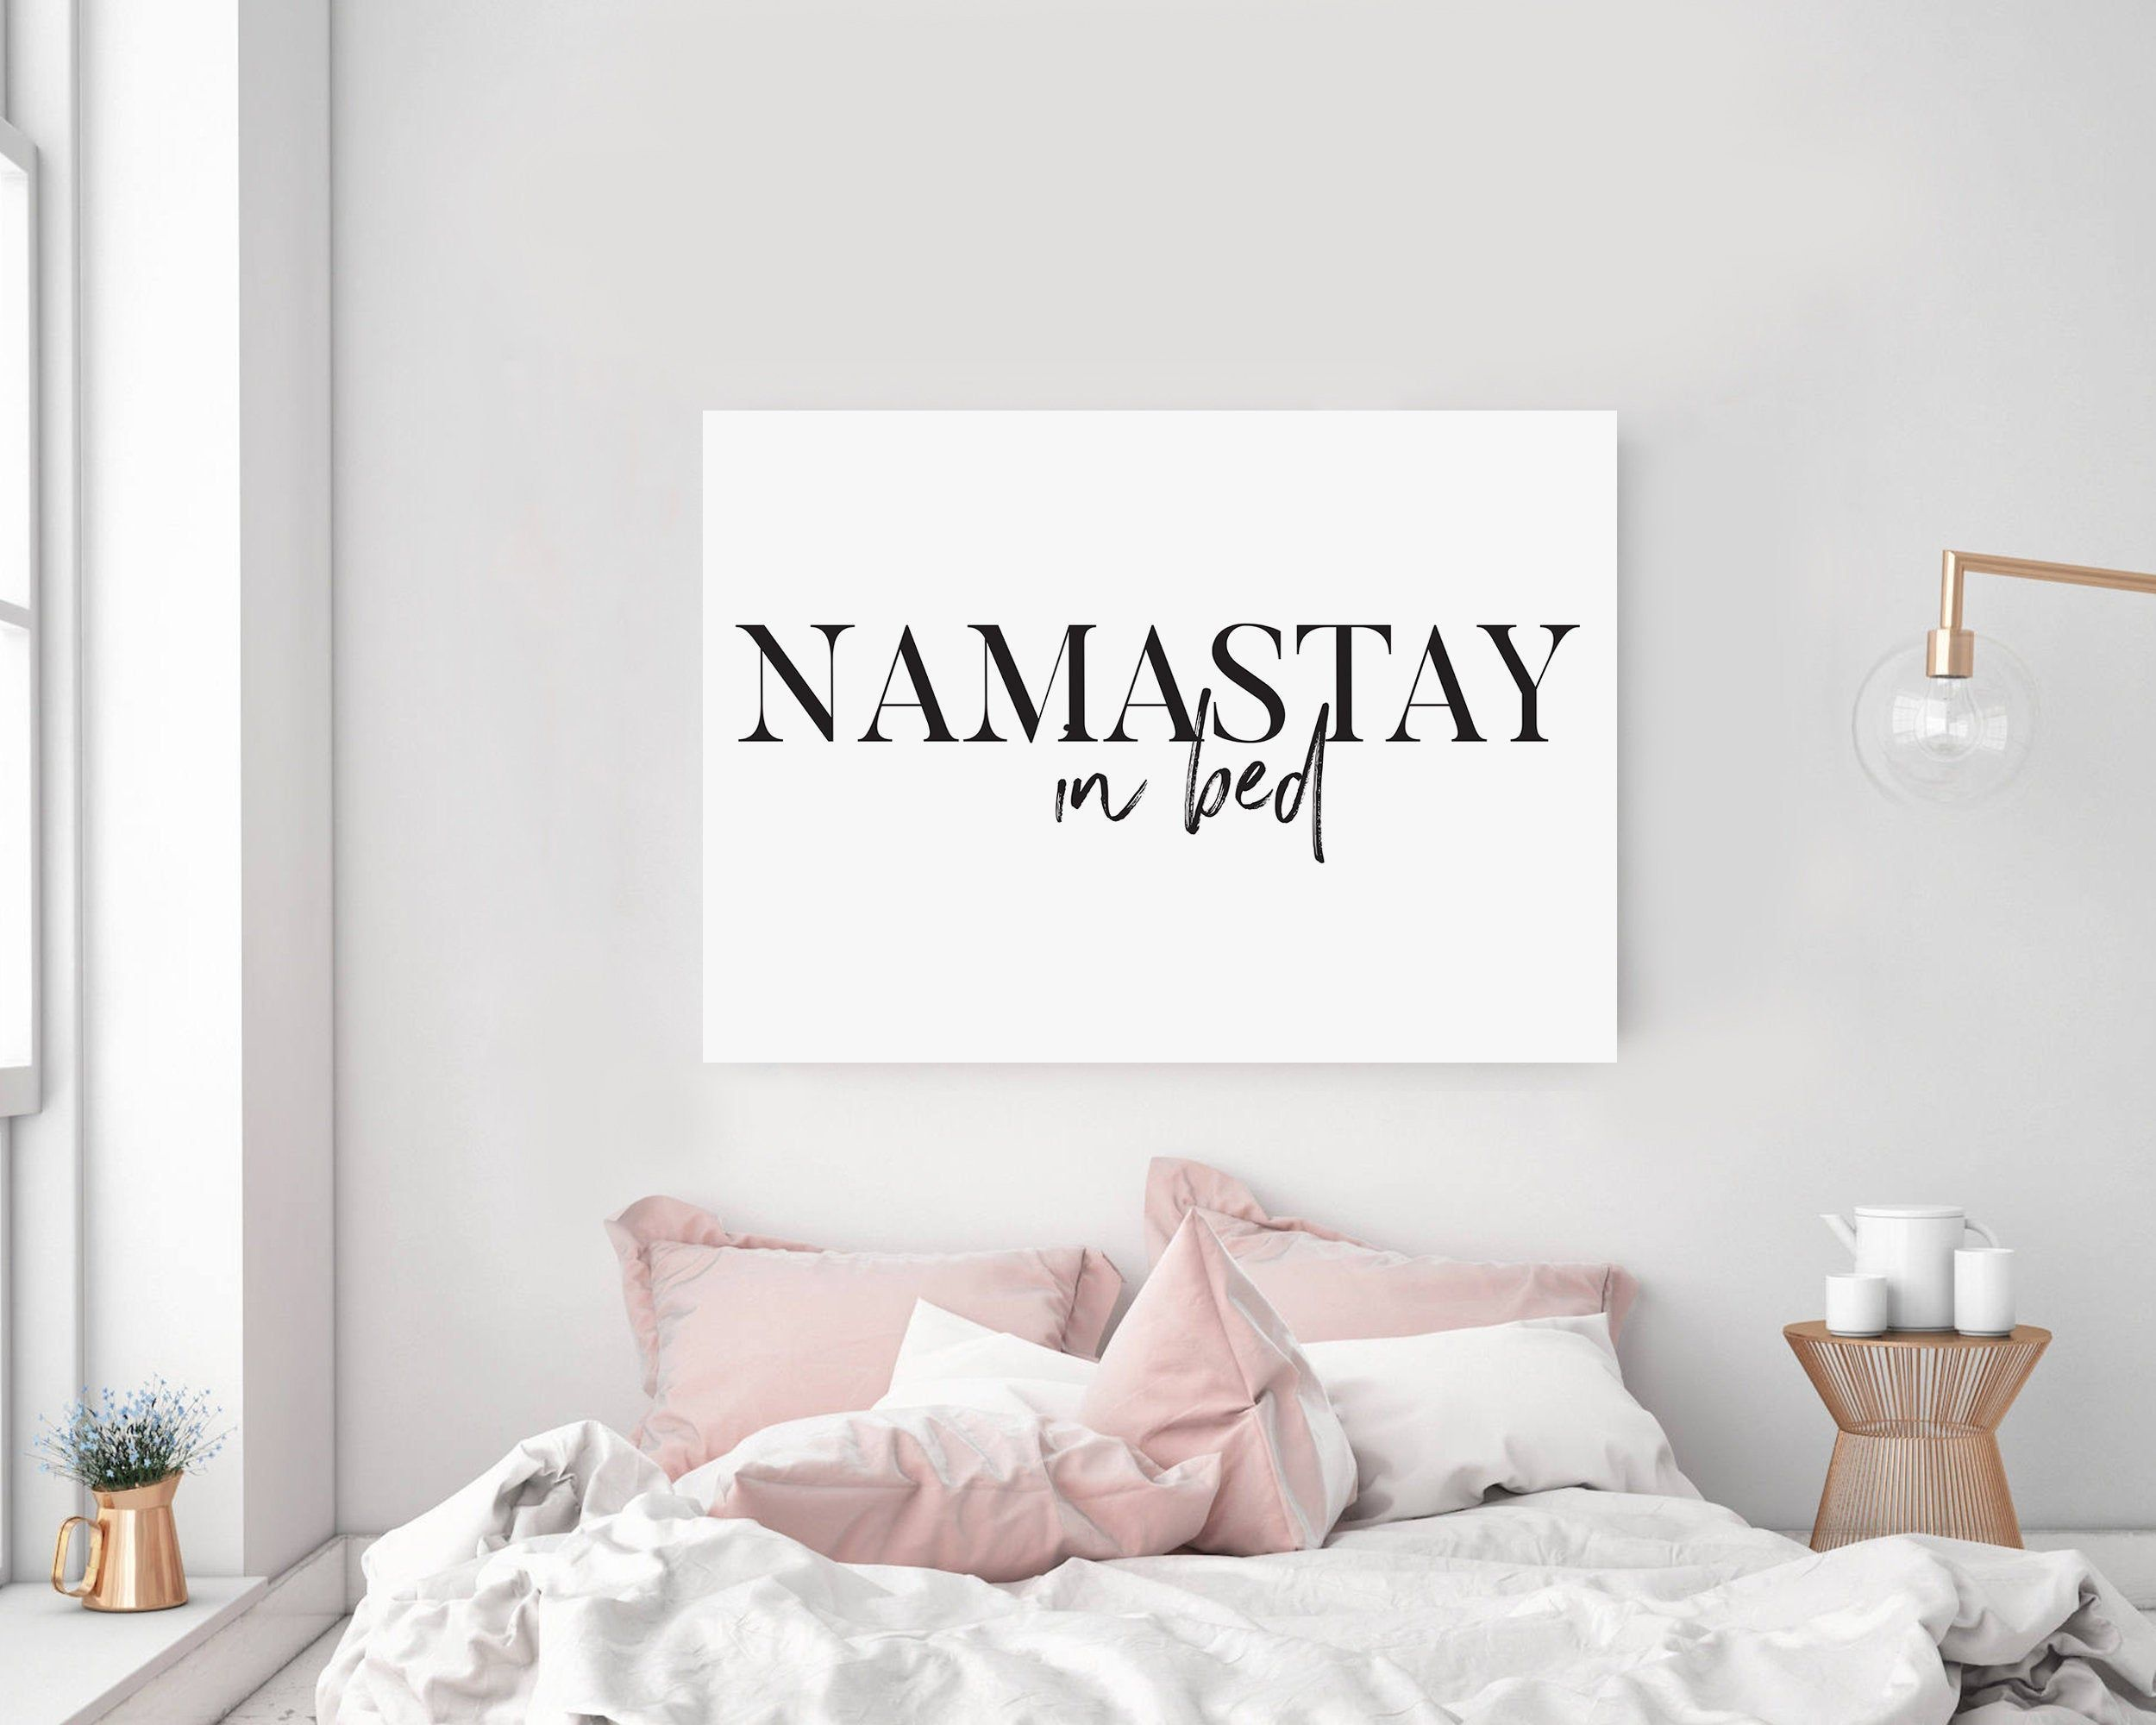 Namastay In Bed Wall Art Namaste In Bed Print Bedroom Decor Bedroom Printable Yoga Deco Bedroom Art Above Bed Above Bed Decor Master Bedroom Wall Decor